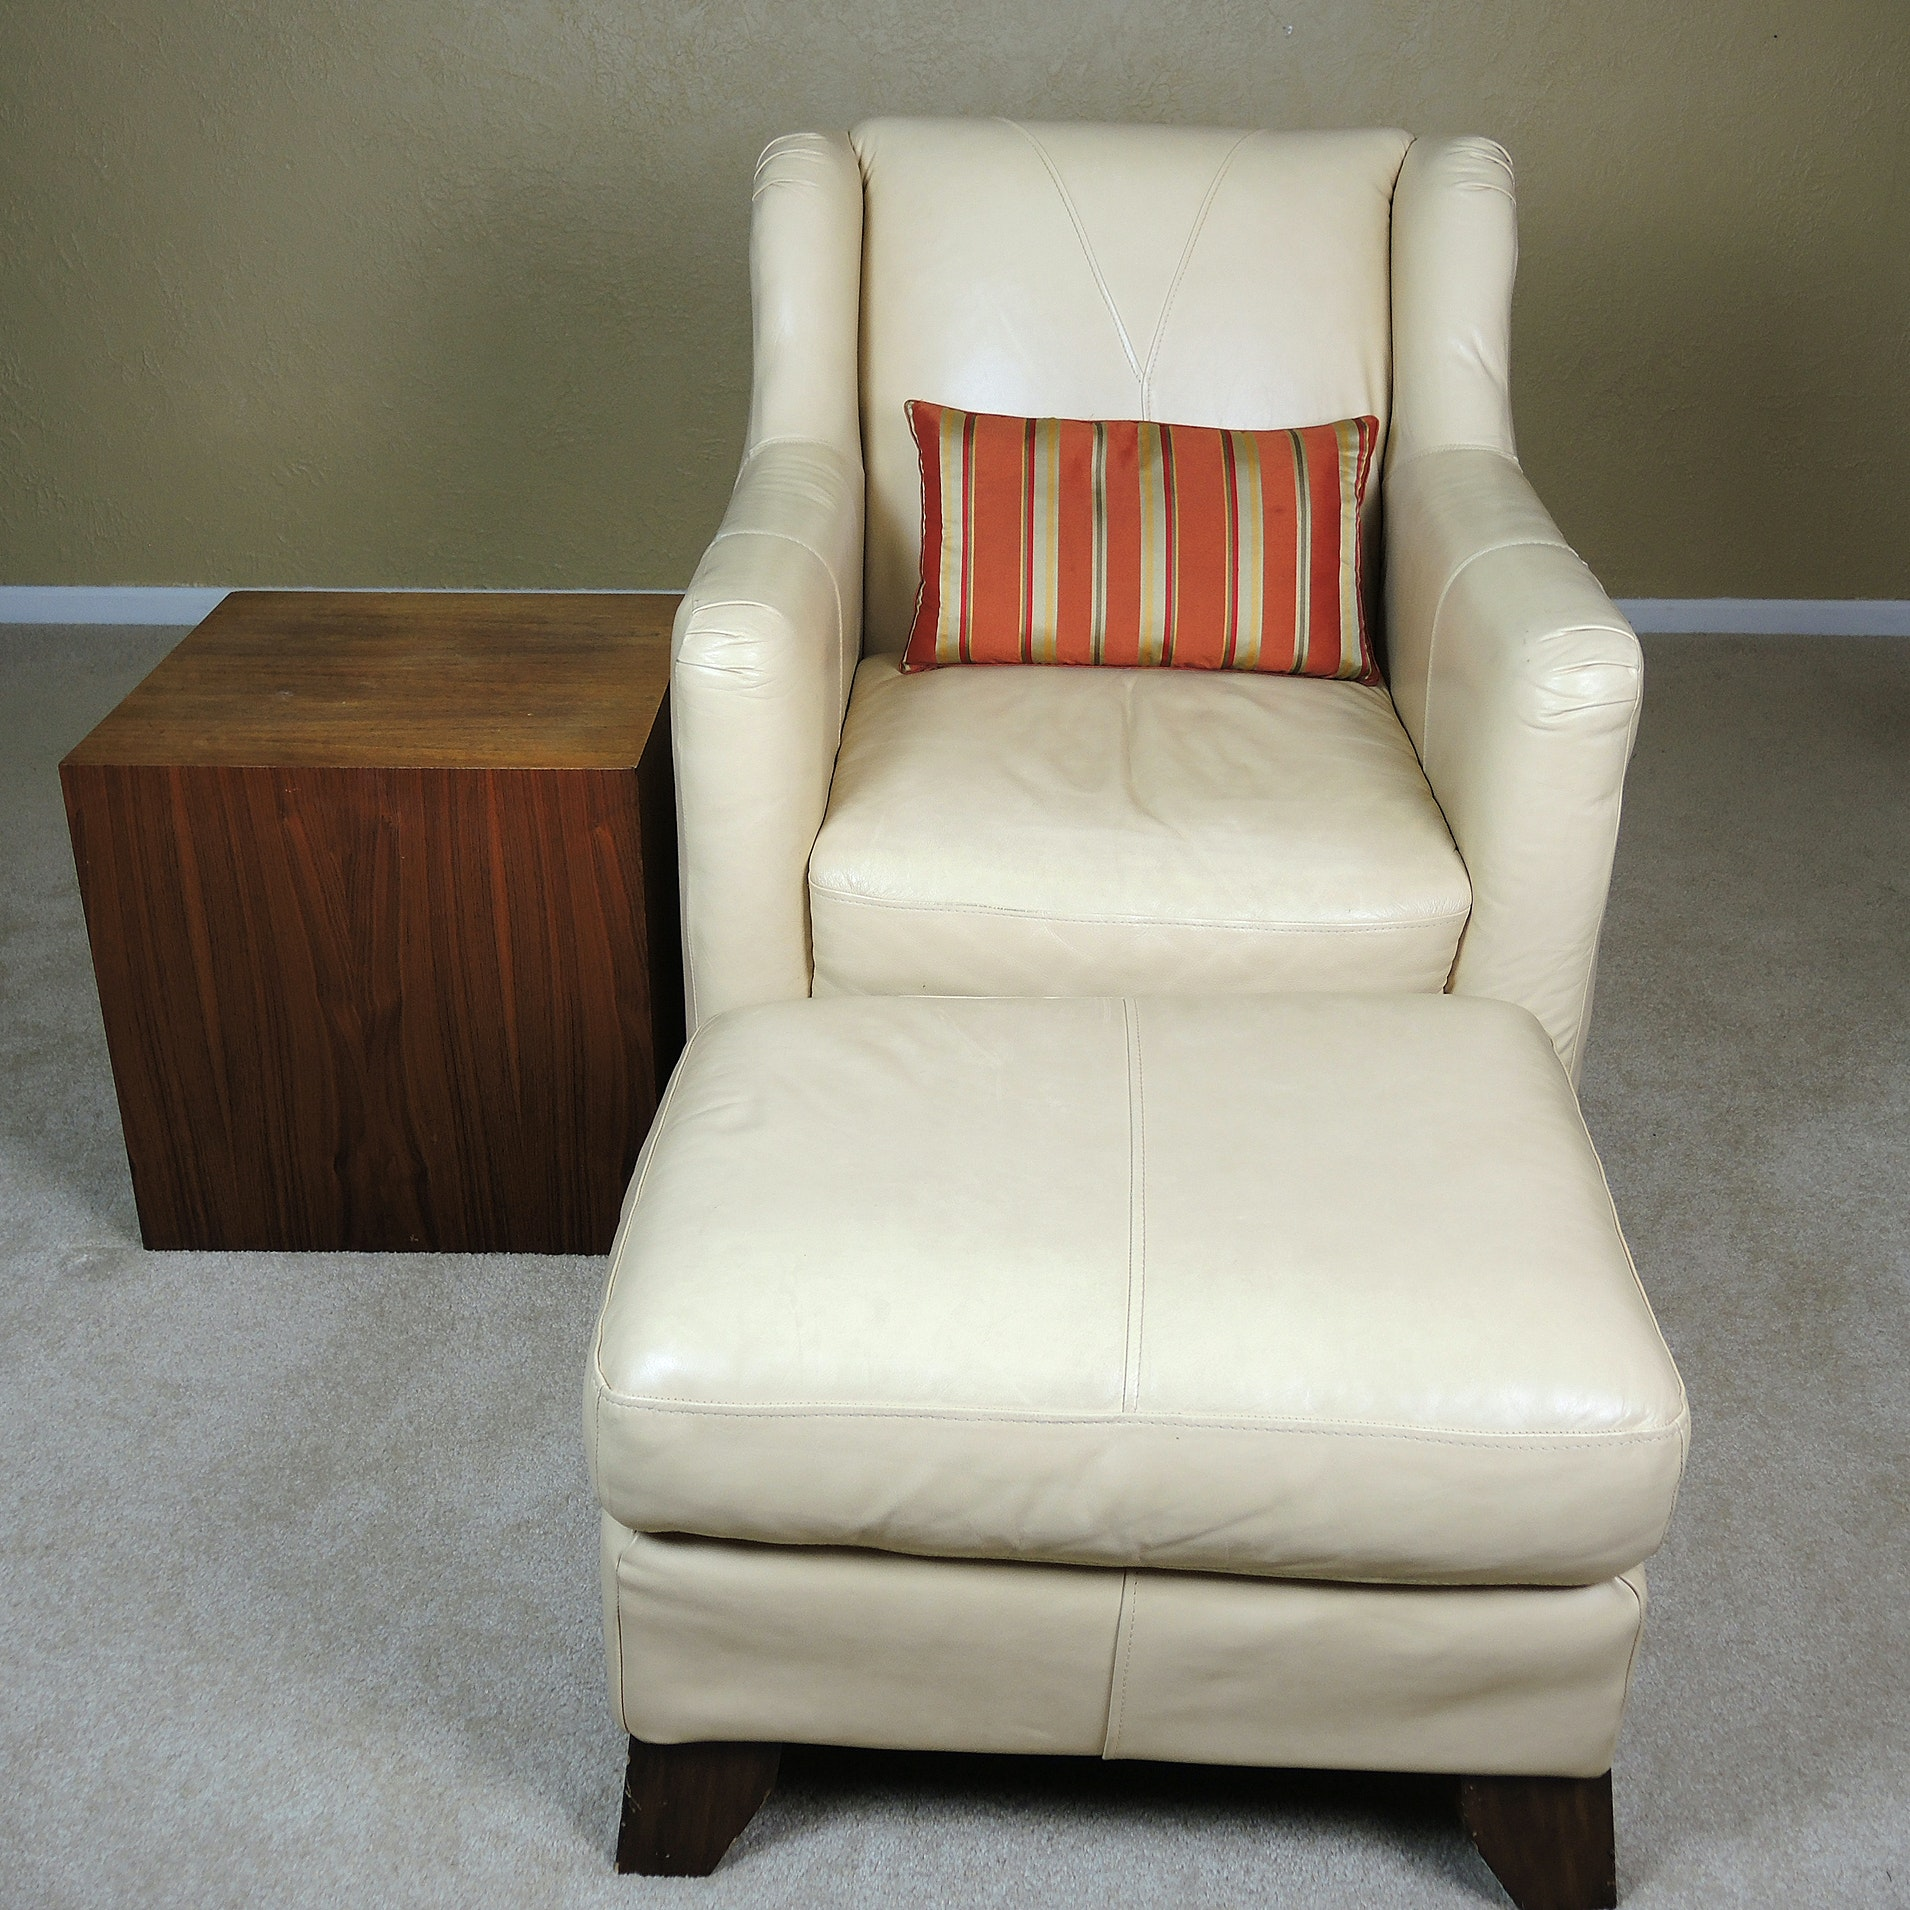 Contemporary Leather Arm Chair with Ottoman and Cube Side Table